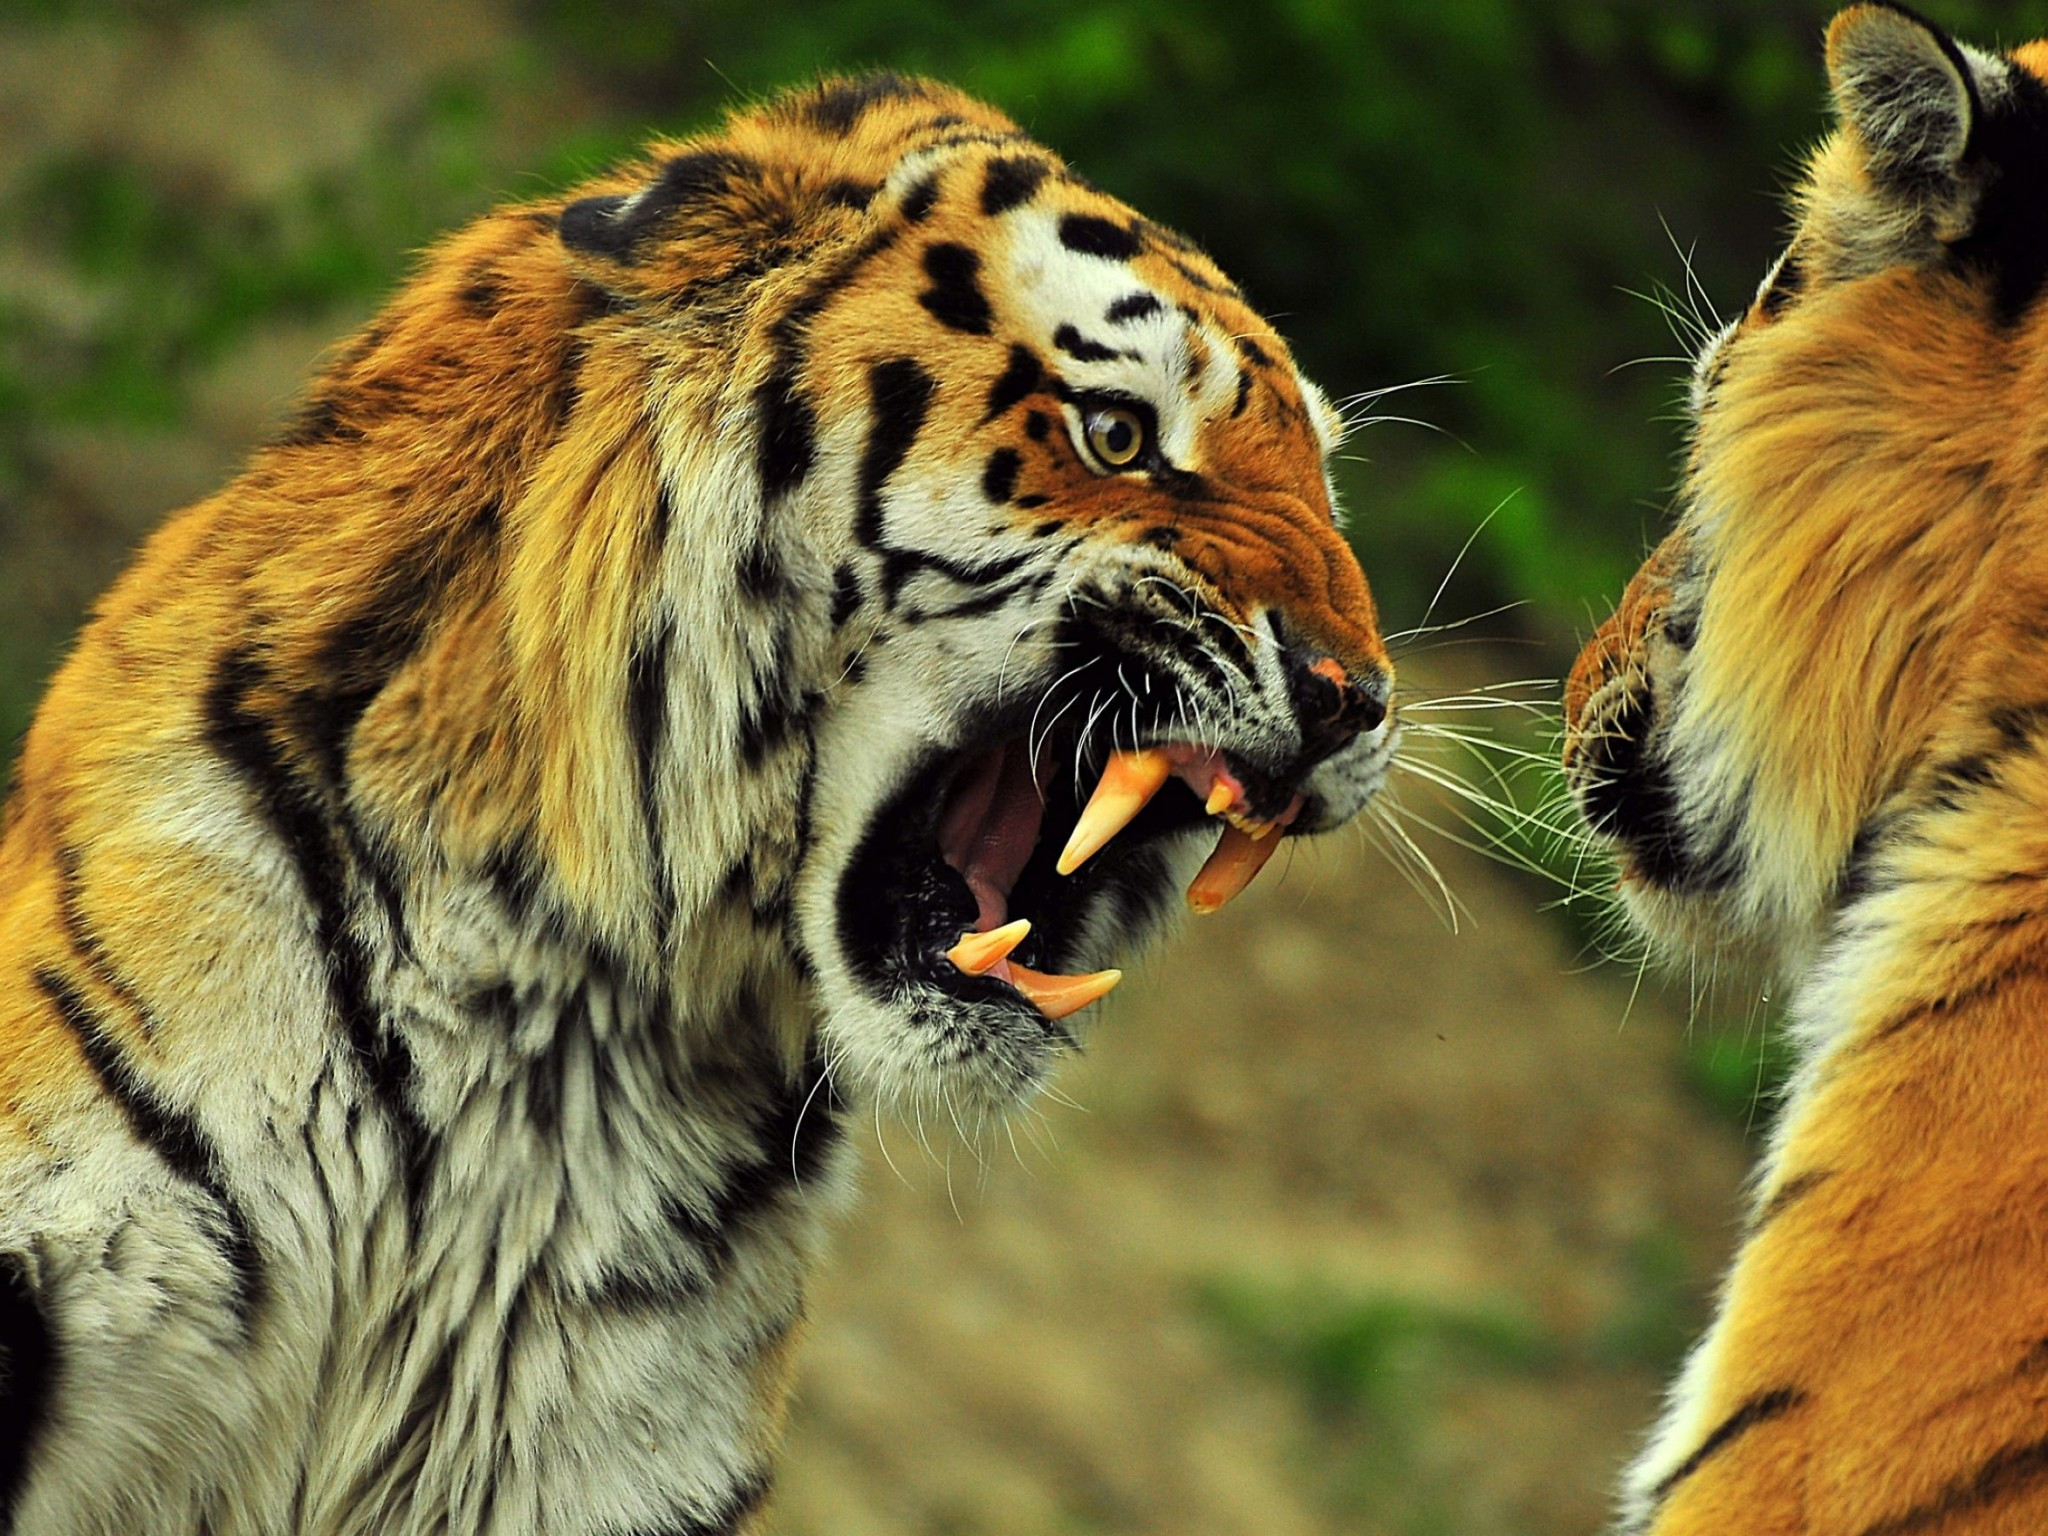 Simple Wallpaper High Resolution Tiger - Animal-High-Resolution-Free-Wallpaper-2048x1536  Photograph_475858.jpg